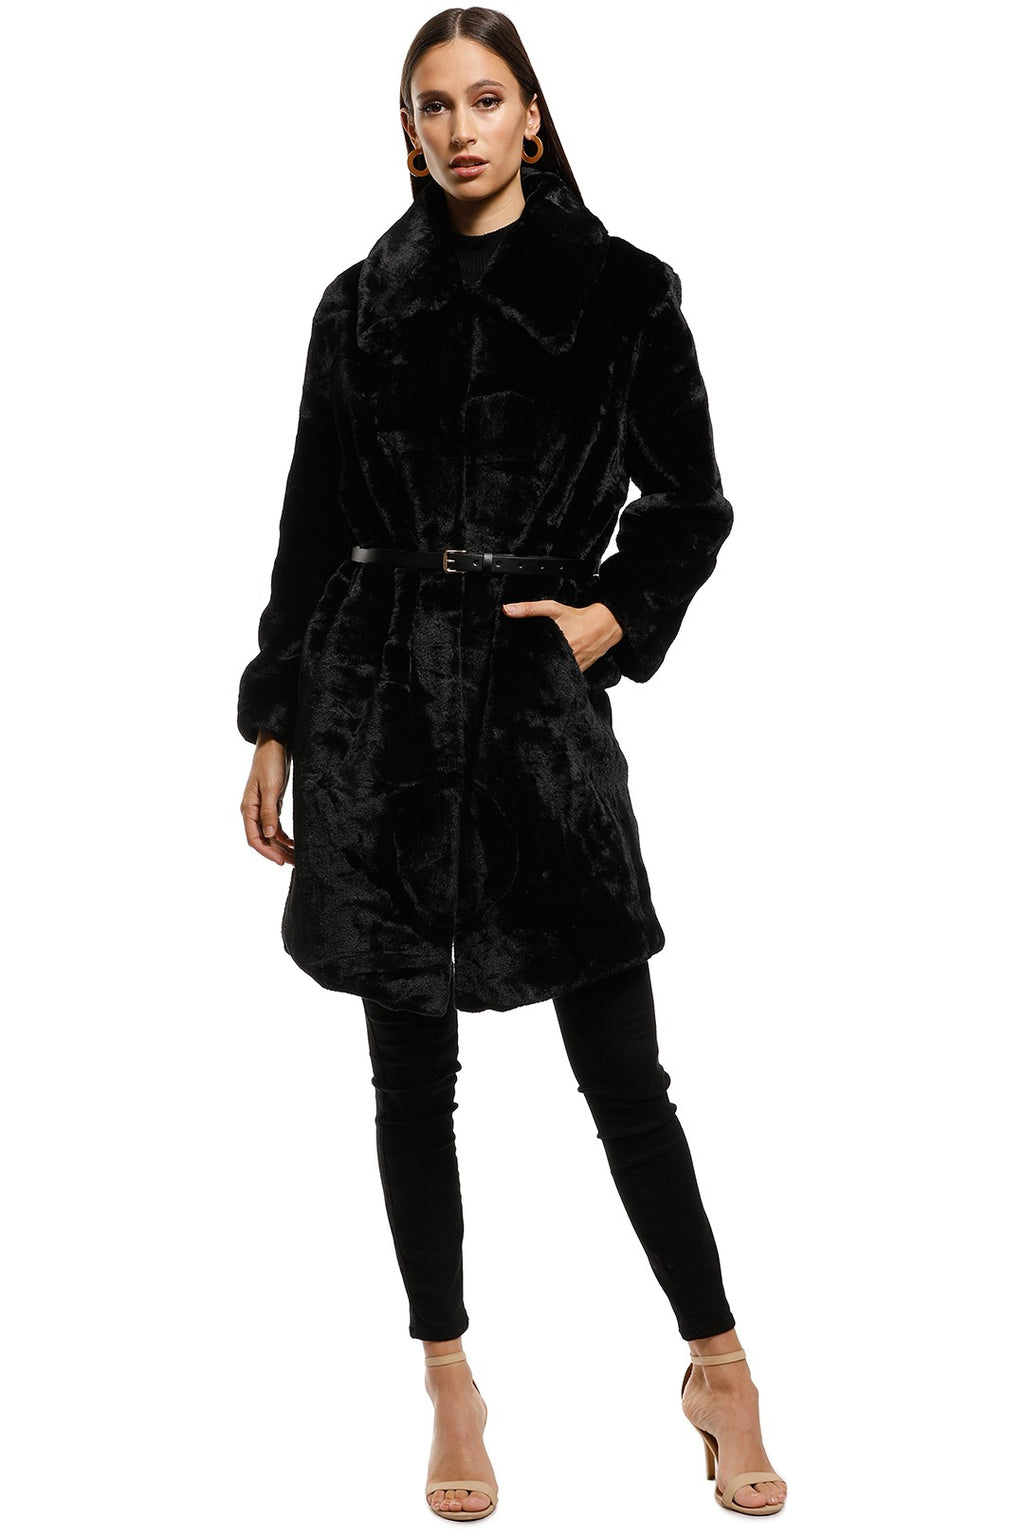 Elliatt Bespoke Coat in Black Faux Fur